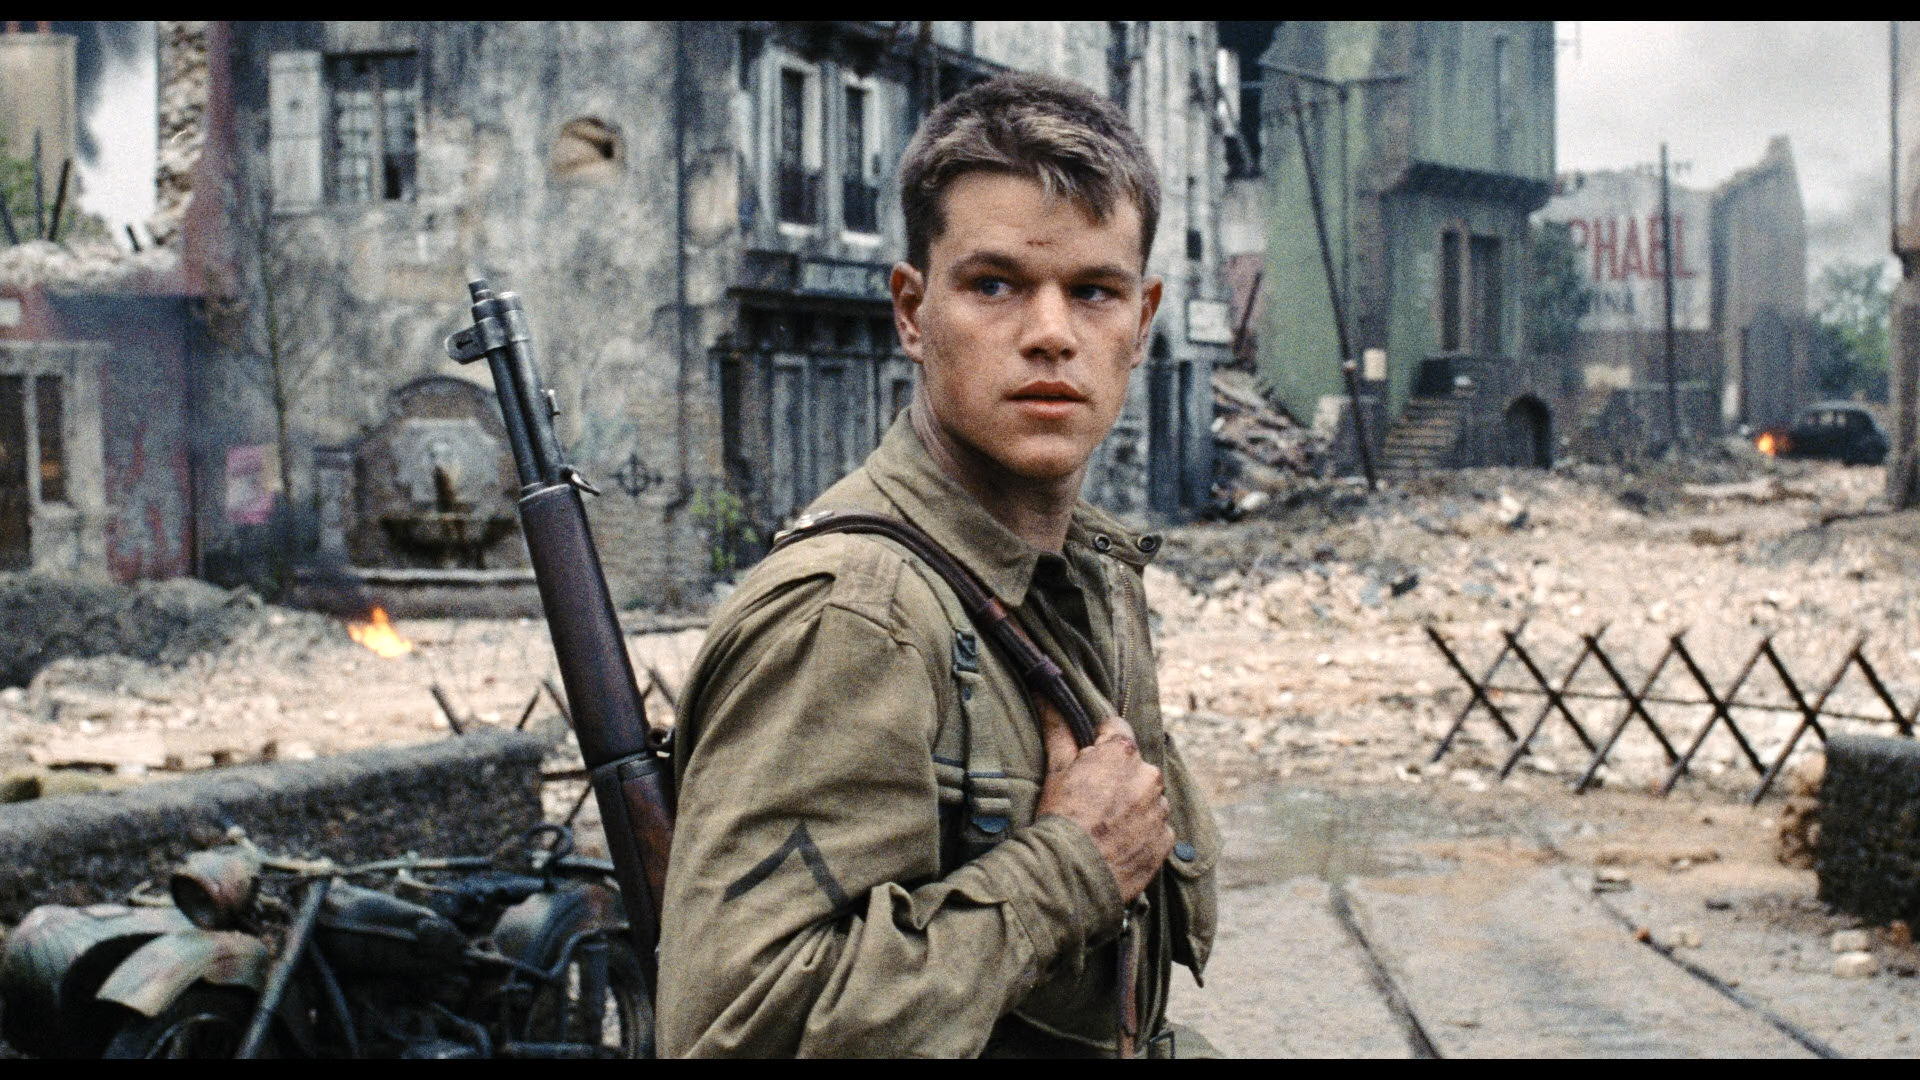 Saving Private Ryan synopsis